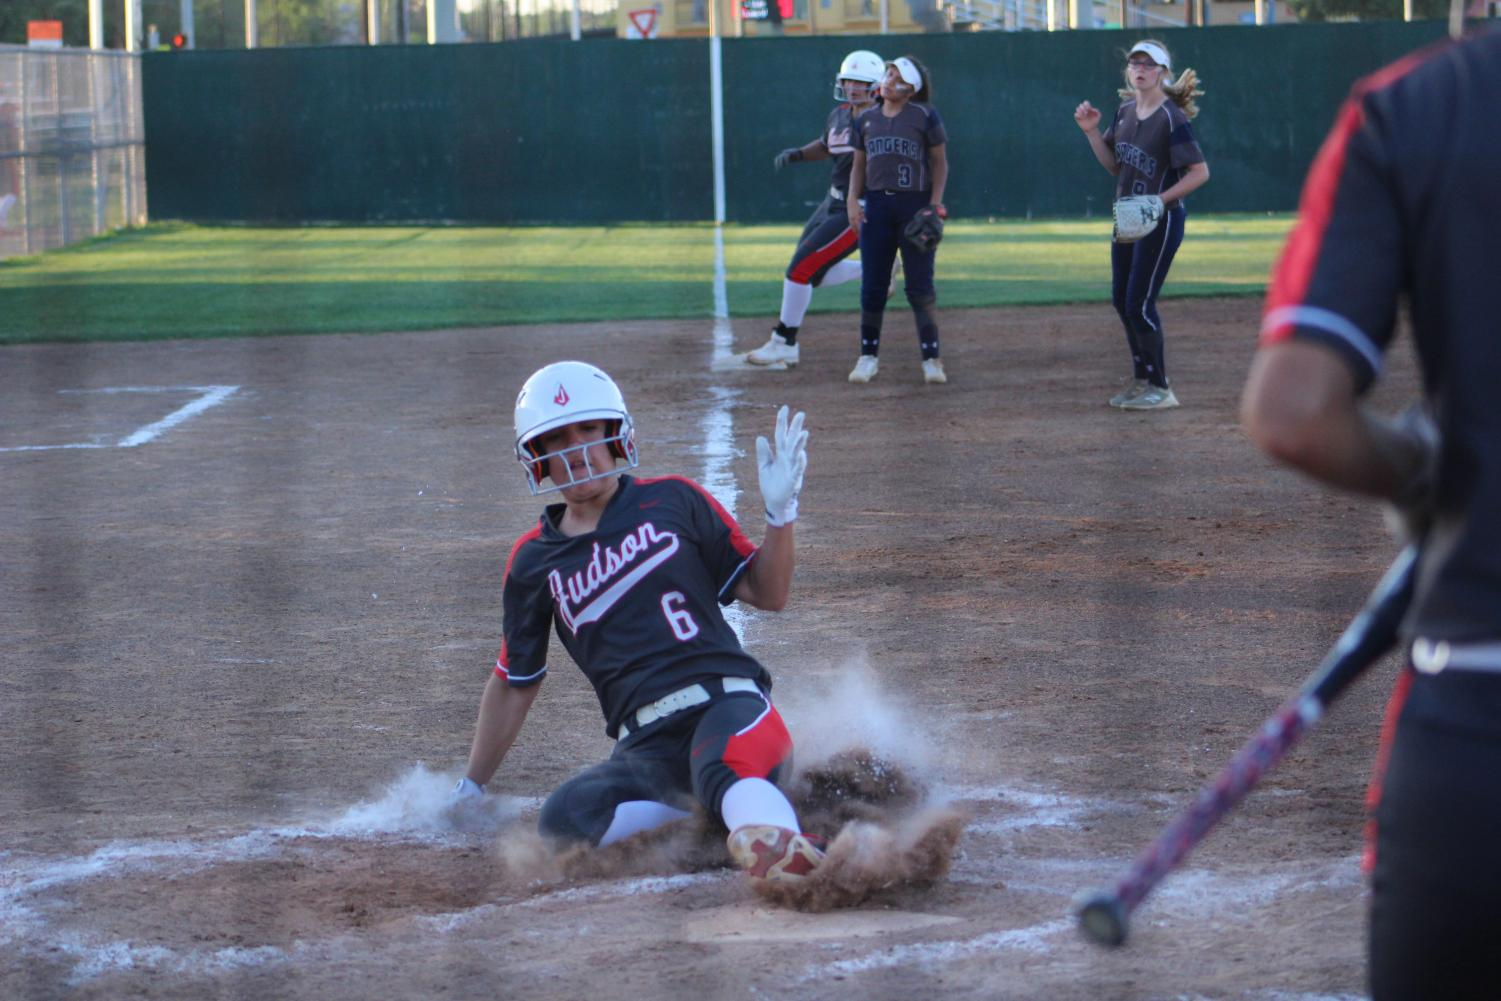 Senior Kadee Luna slides into home. The game was an exciting win over Smithson Valley,